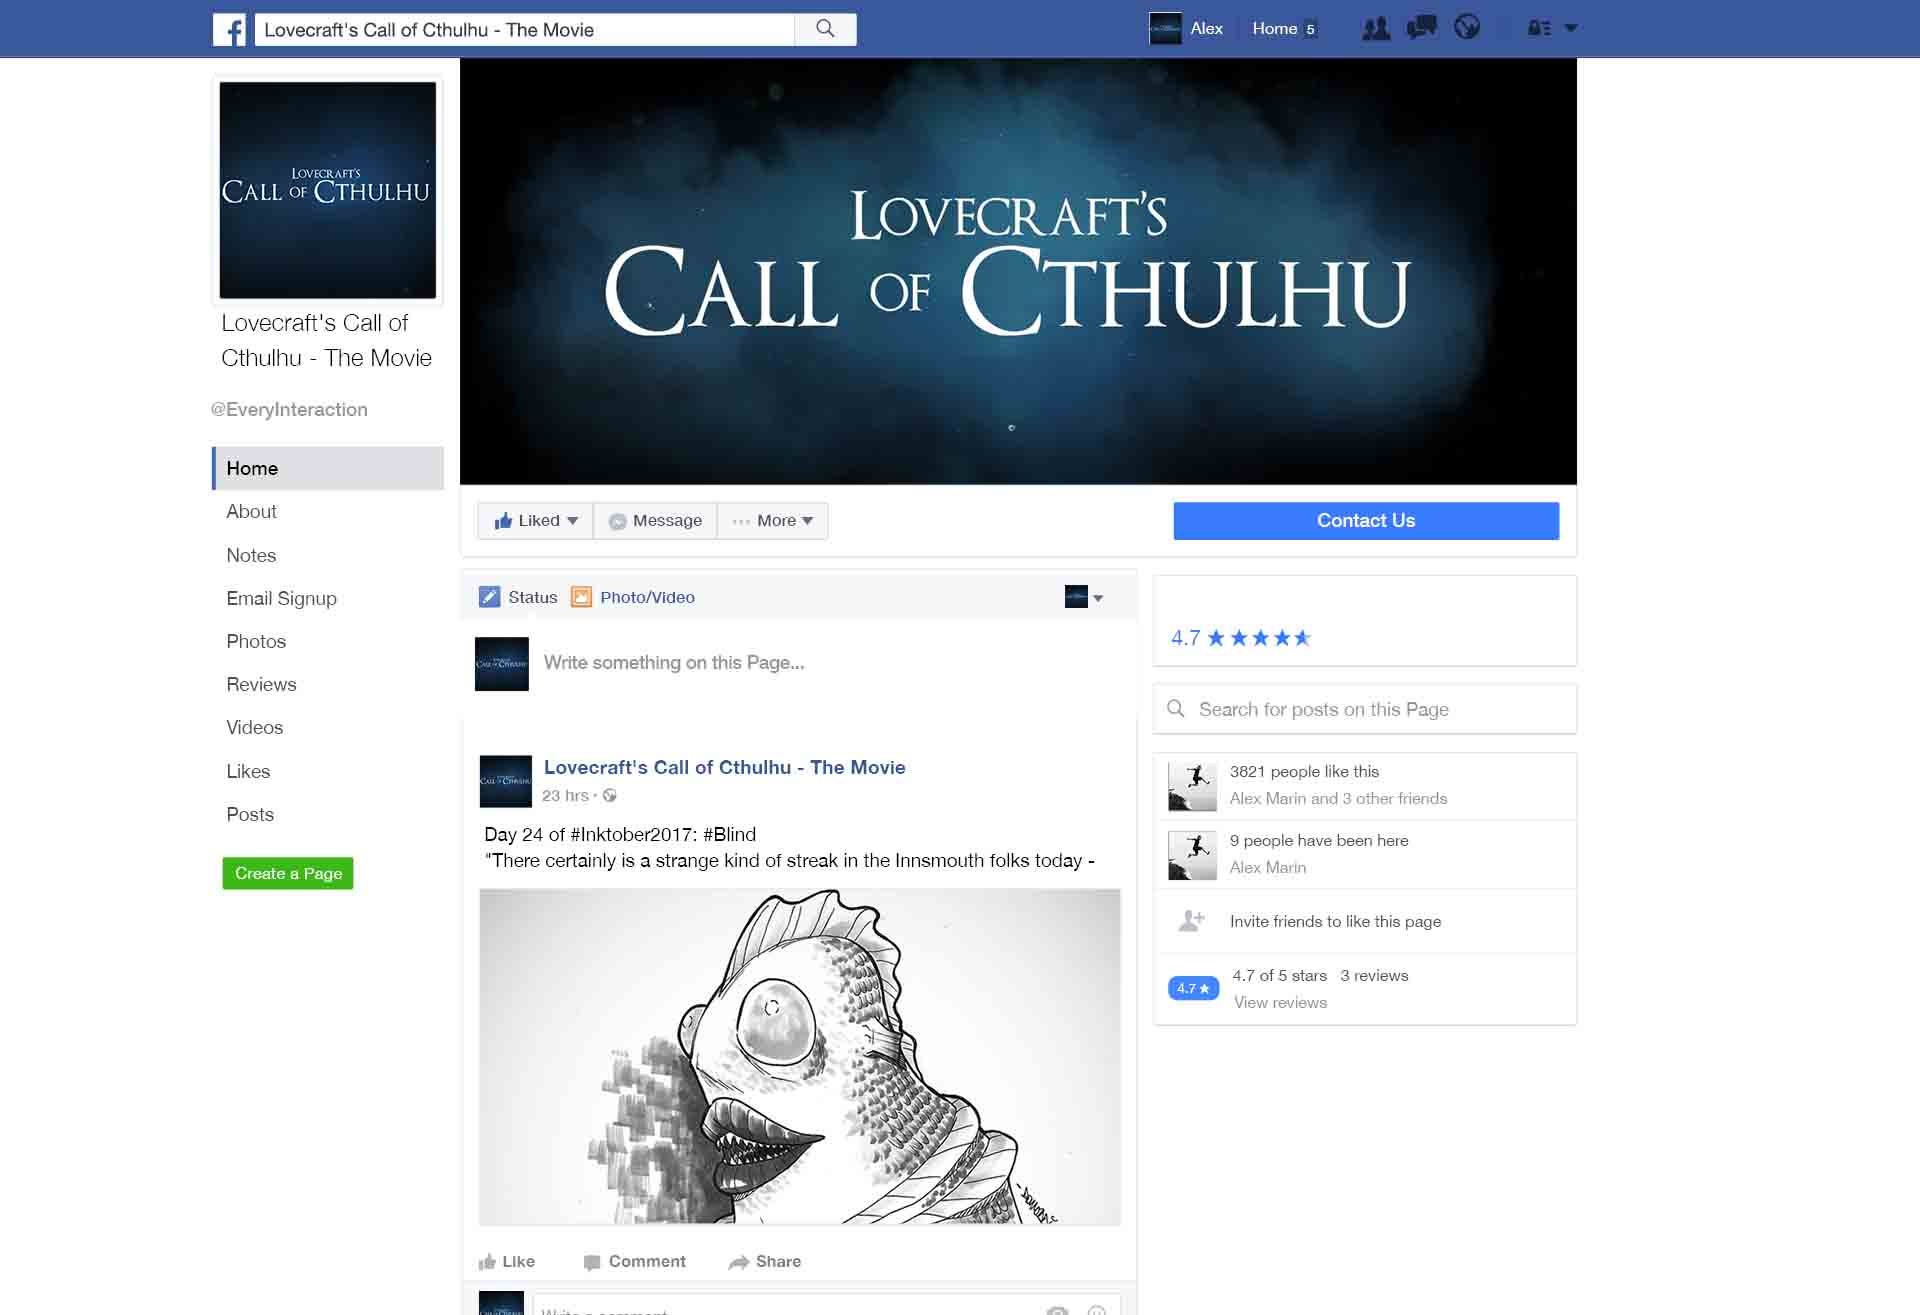 portfolio-lovecrafts-call-of-cthulhu-at-elevendots-3